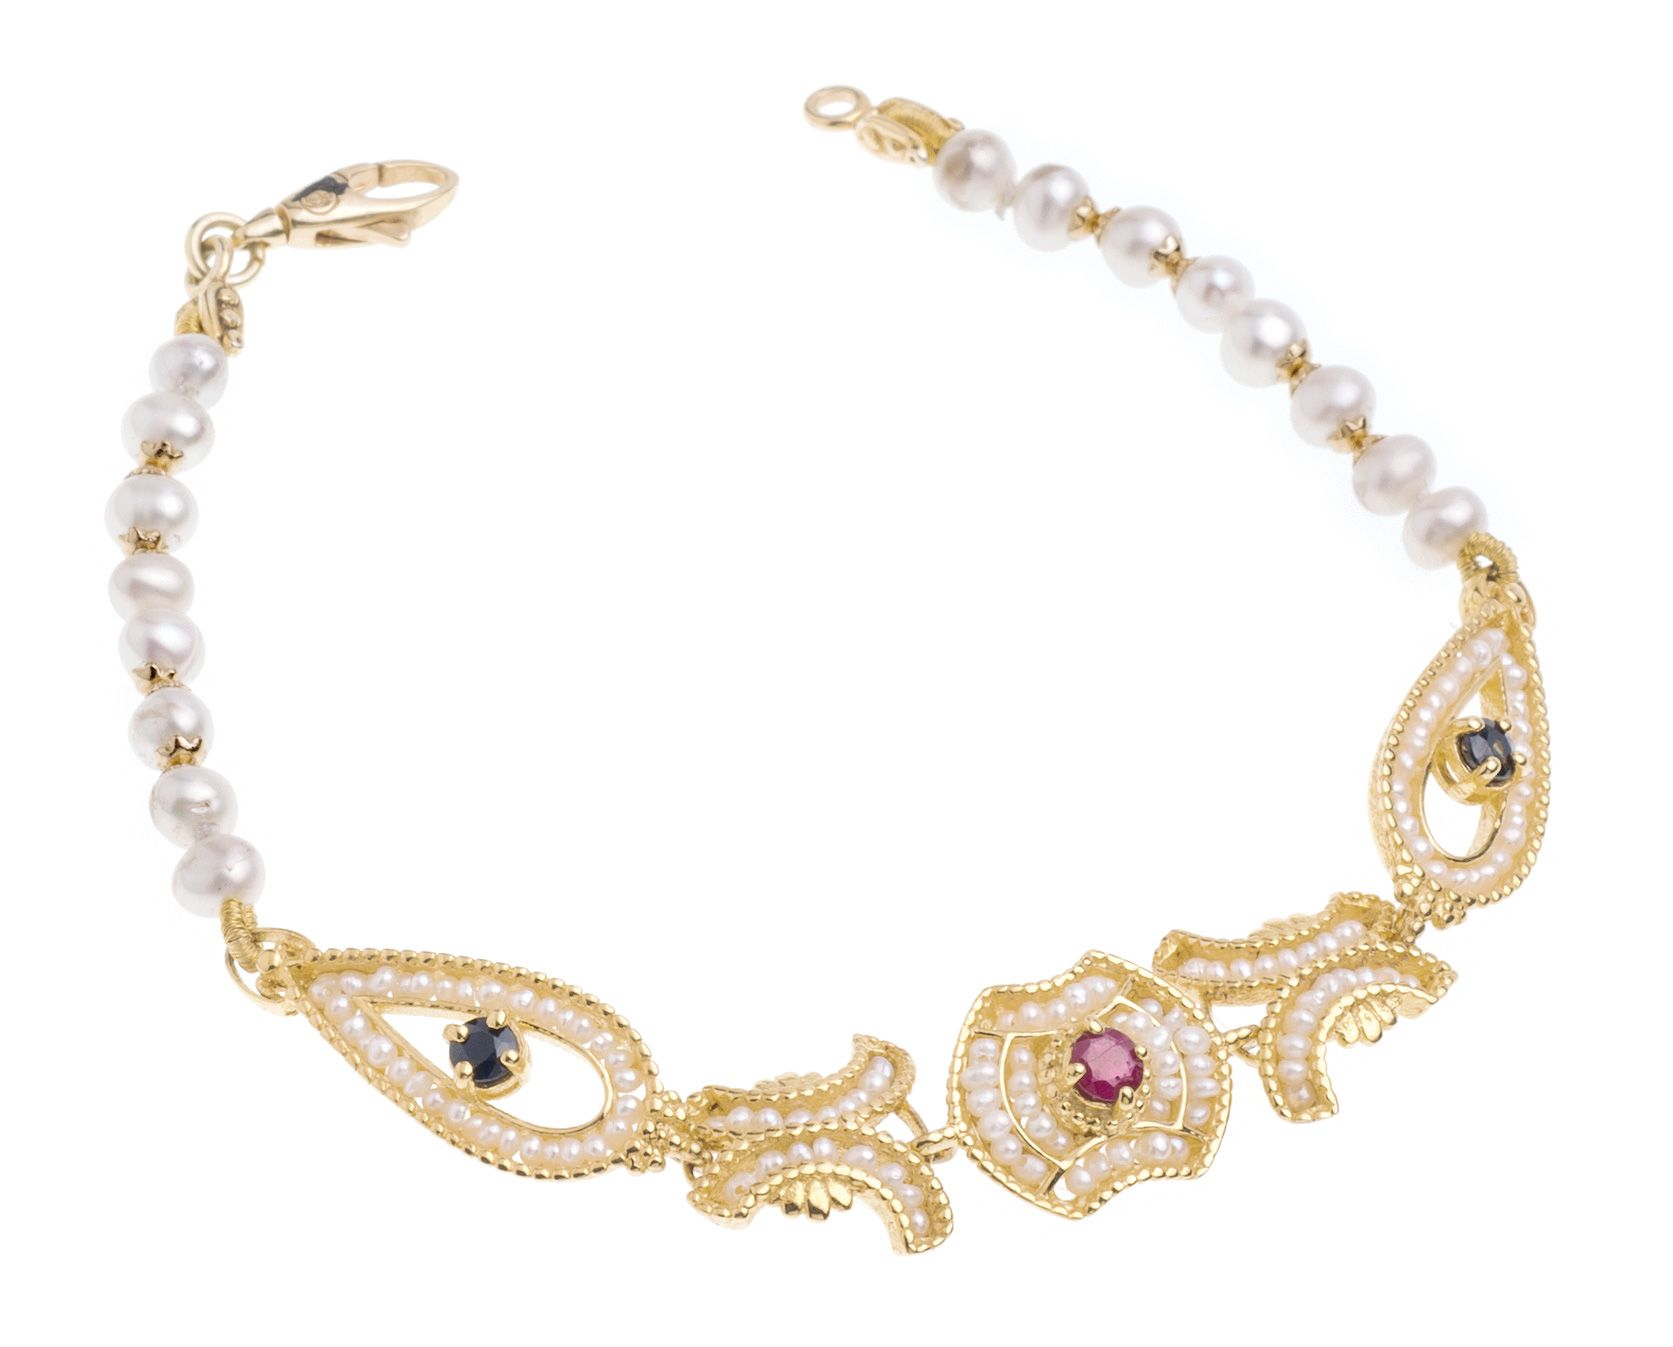 Gold Bracelet with Pearls and precious Stones (14238)